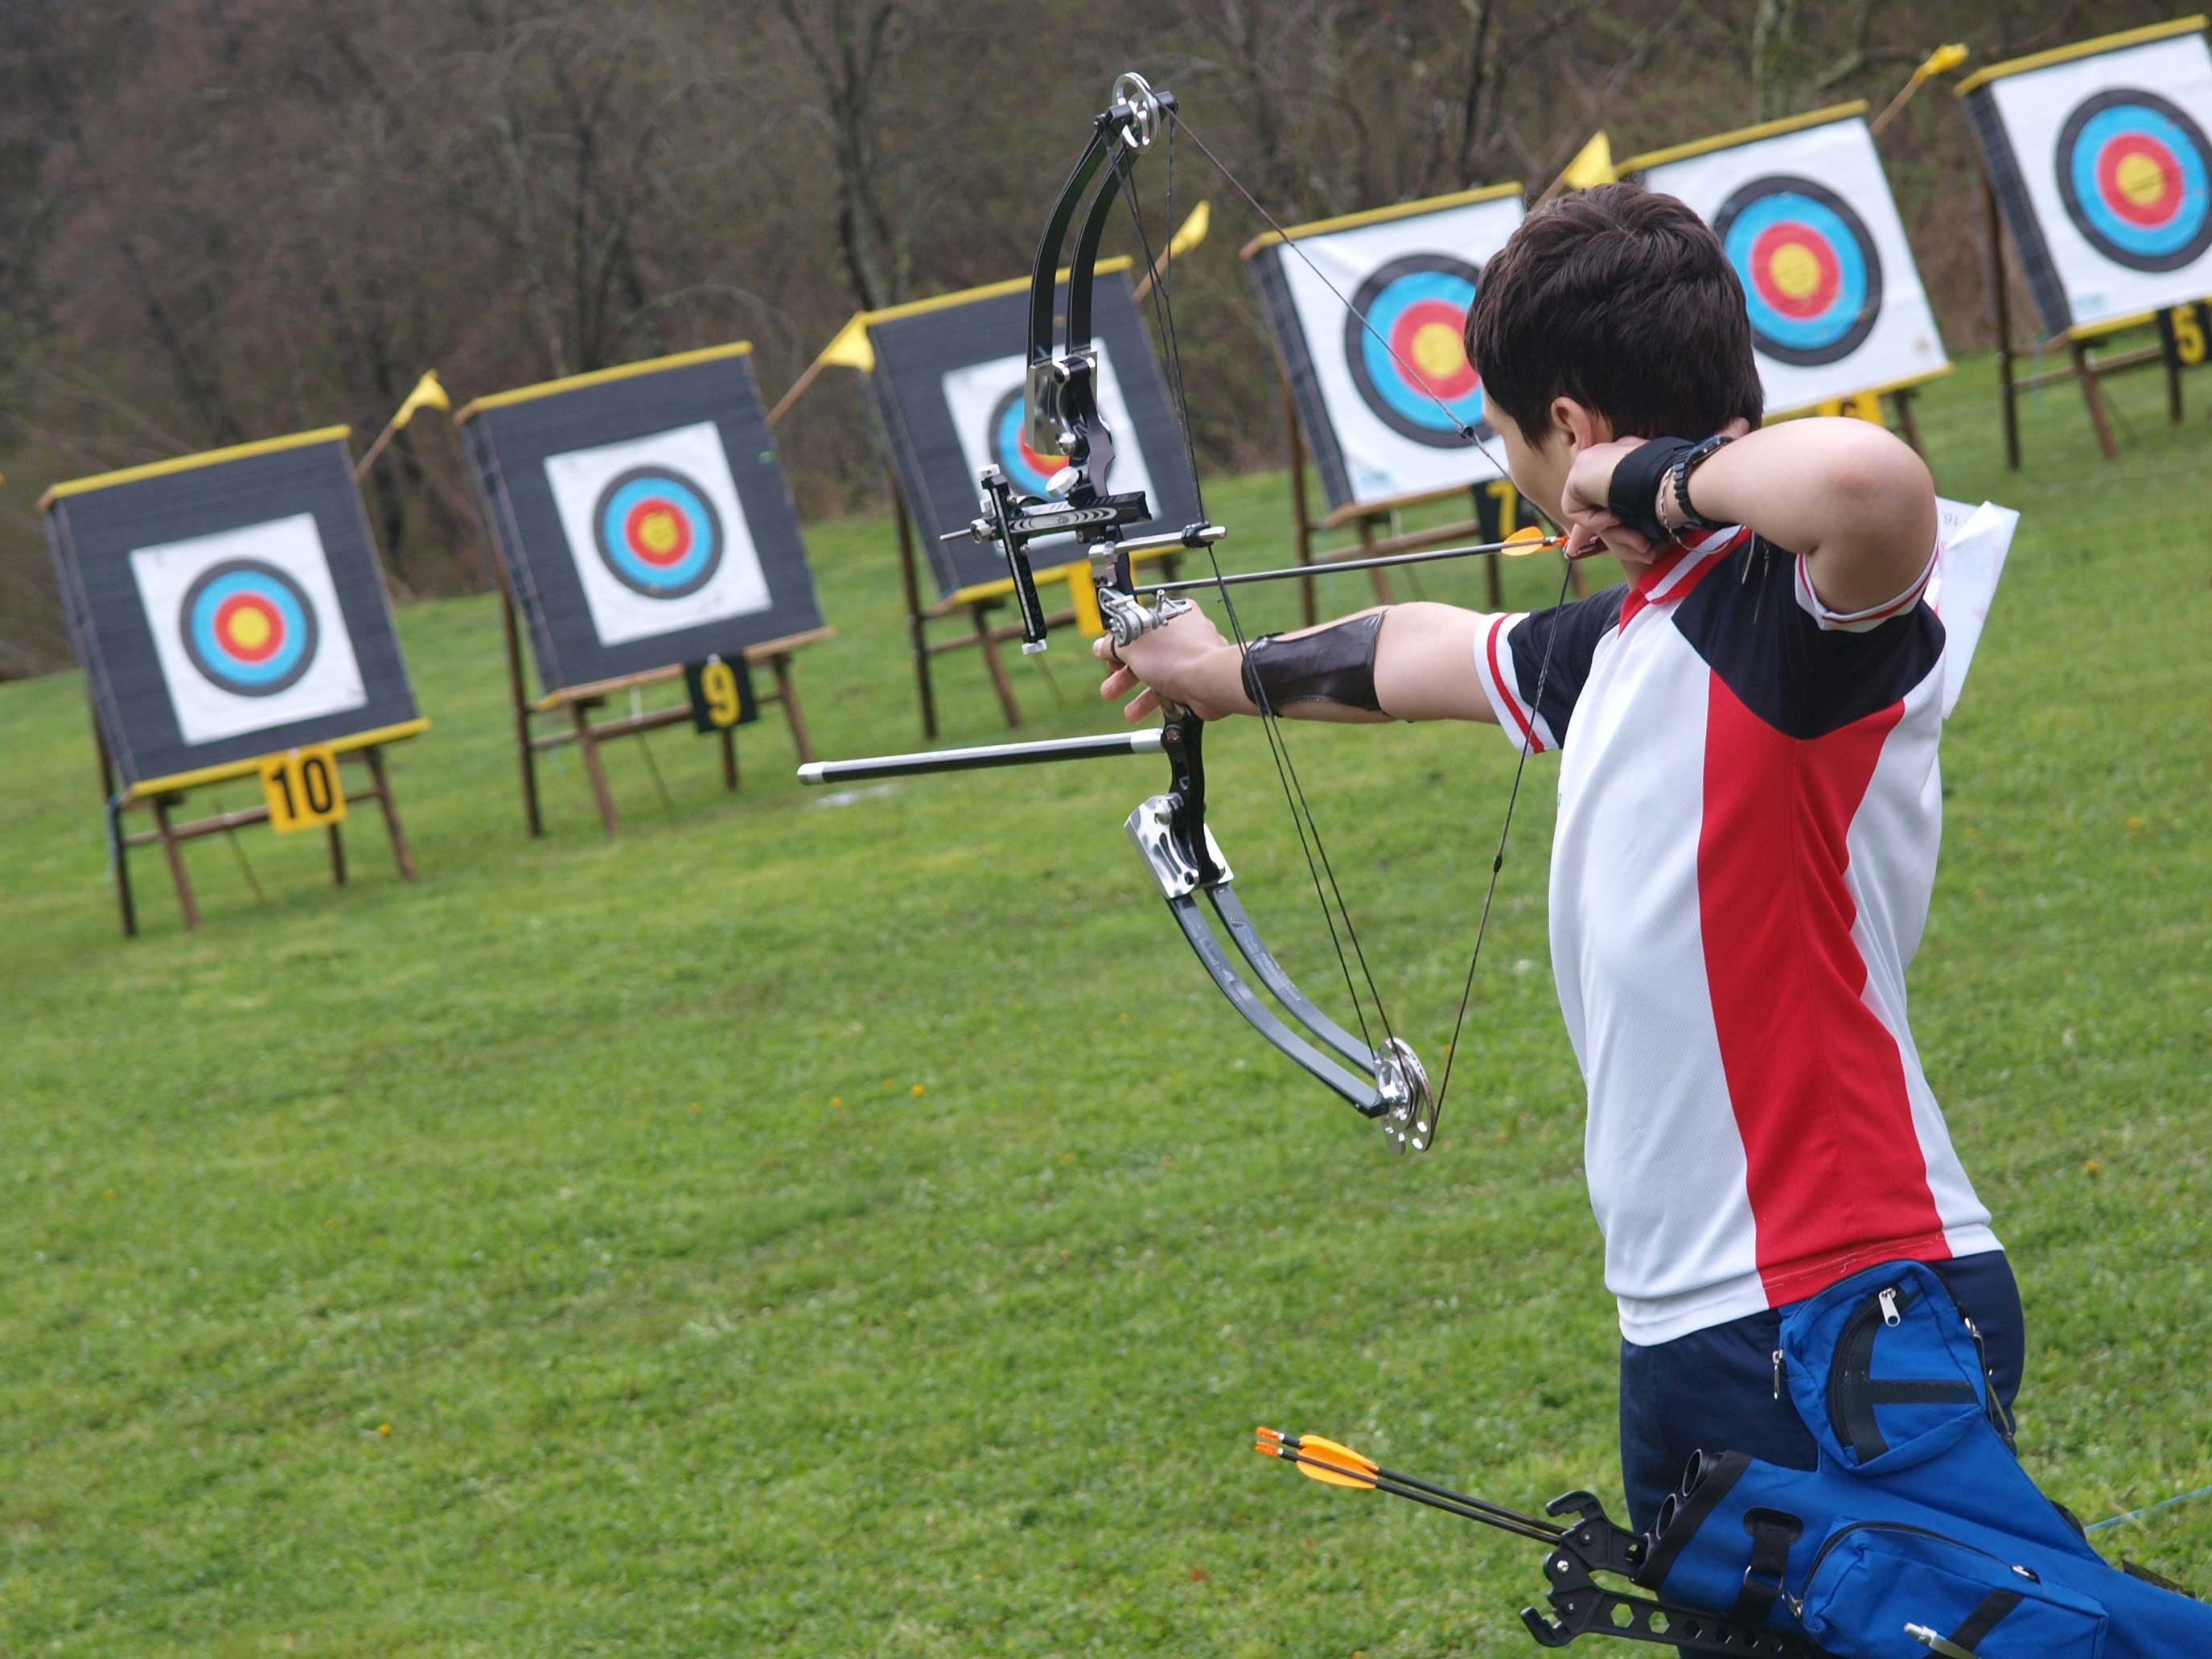 Compound Bow Archery Coaching